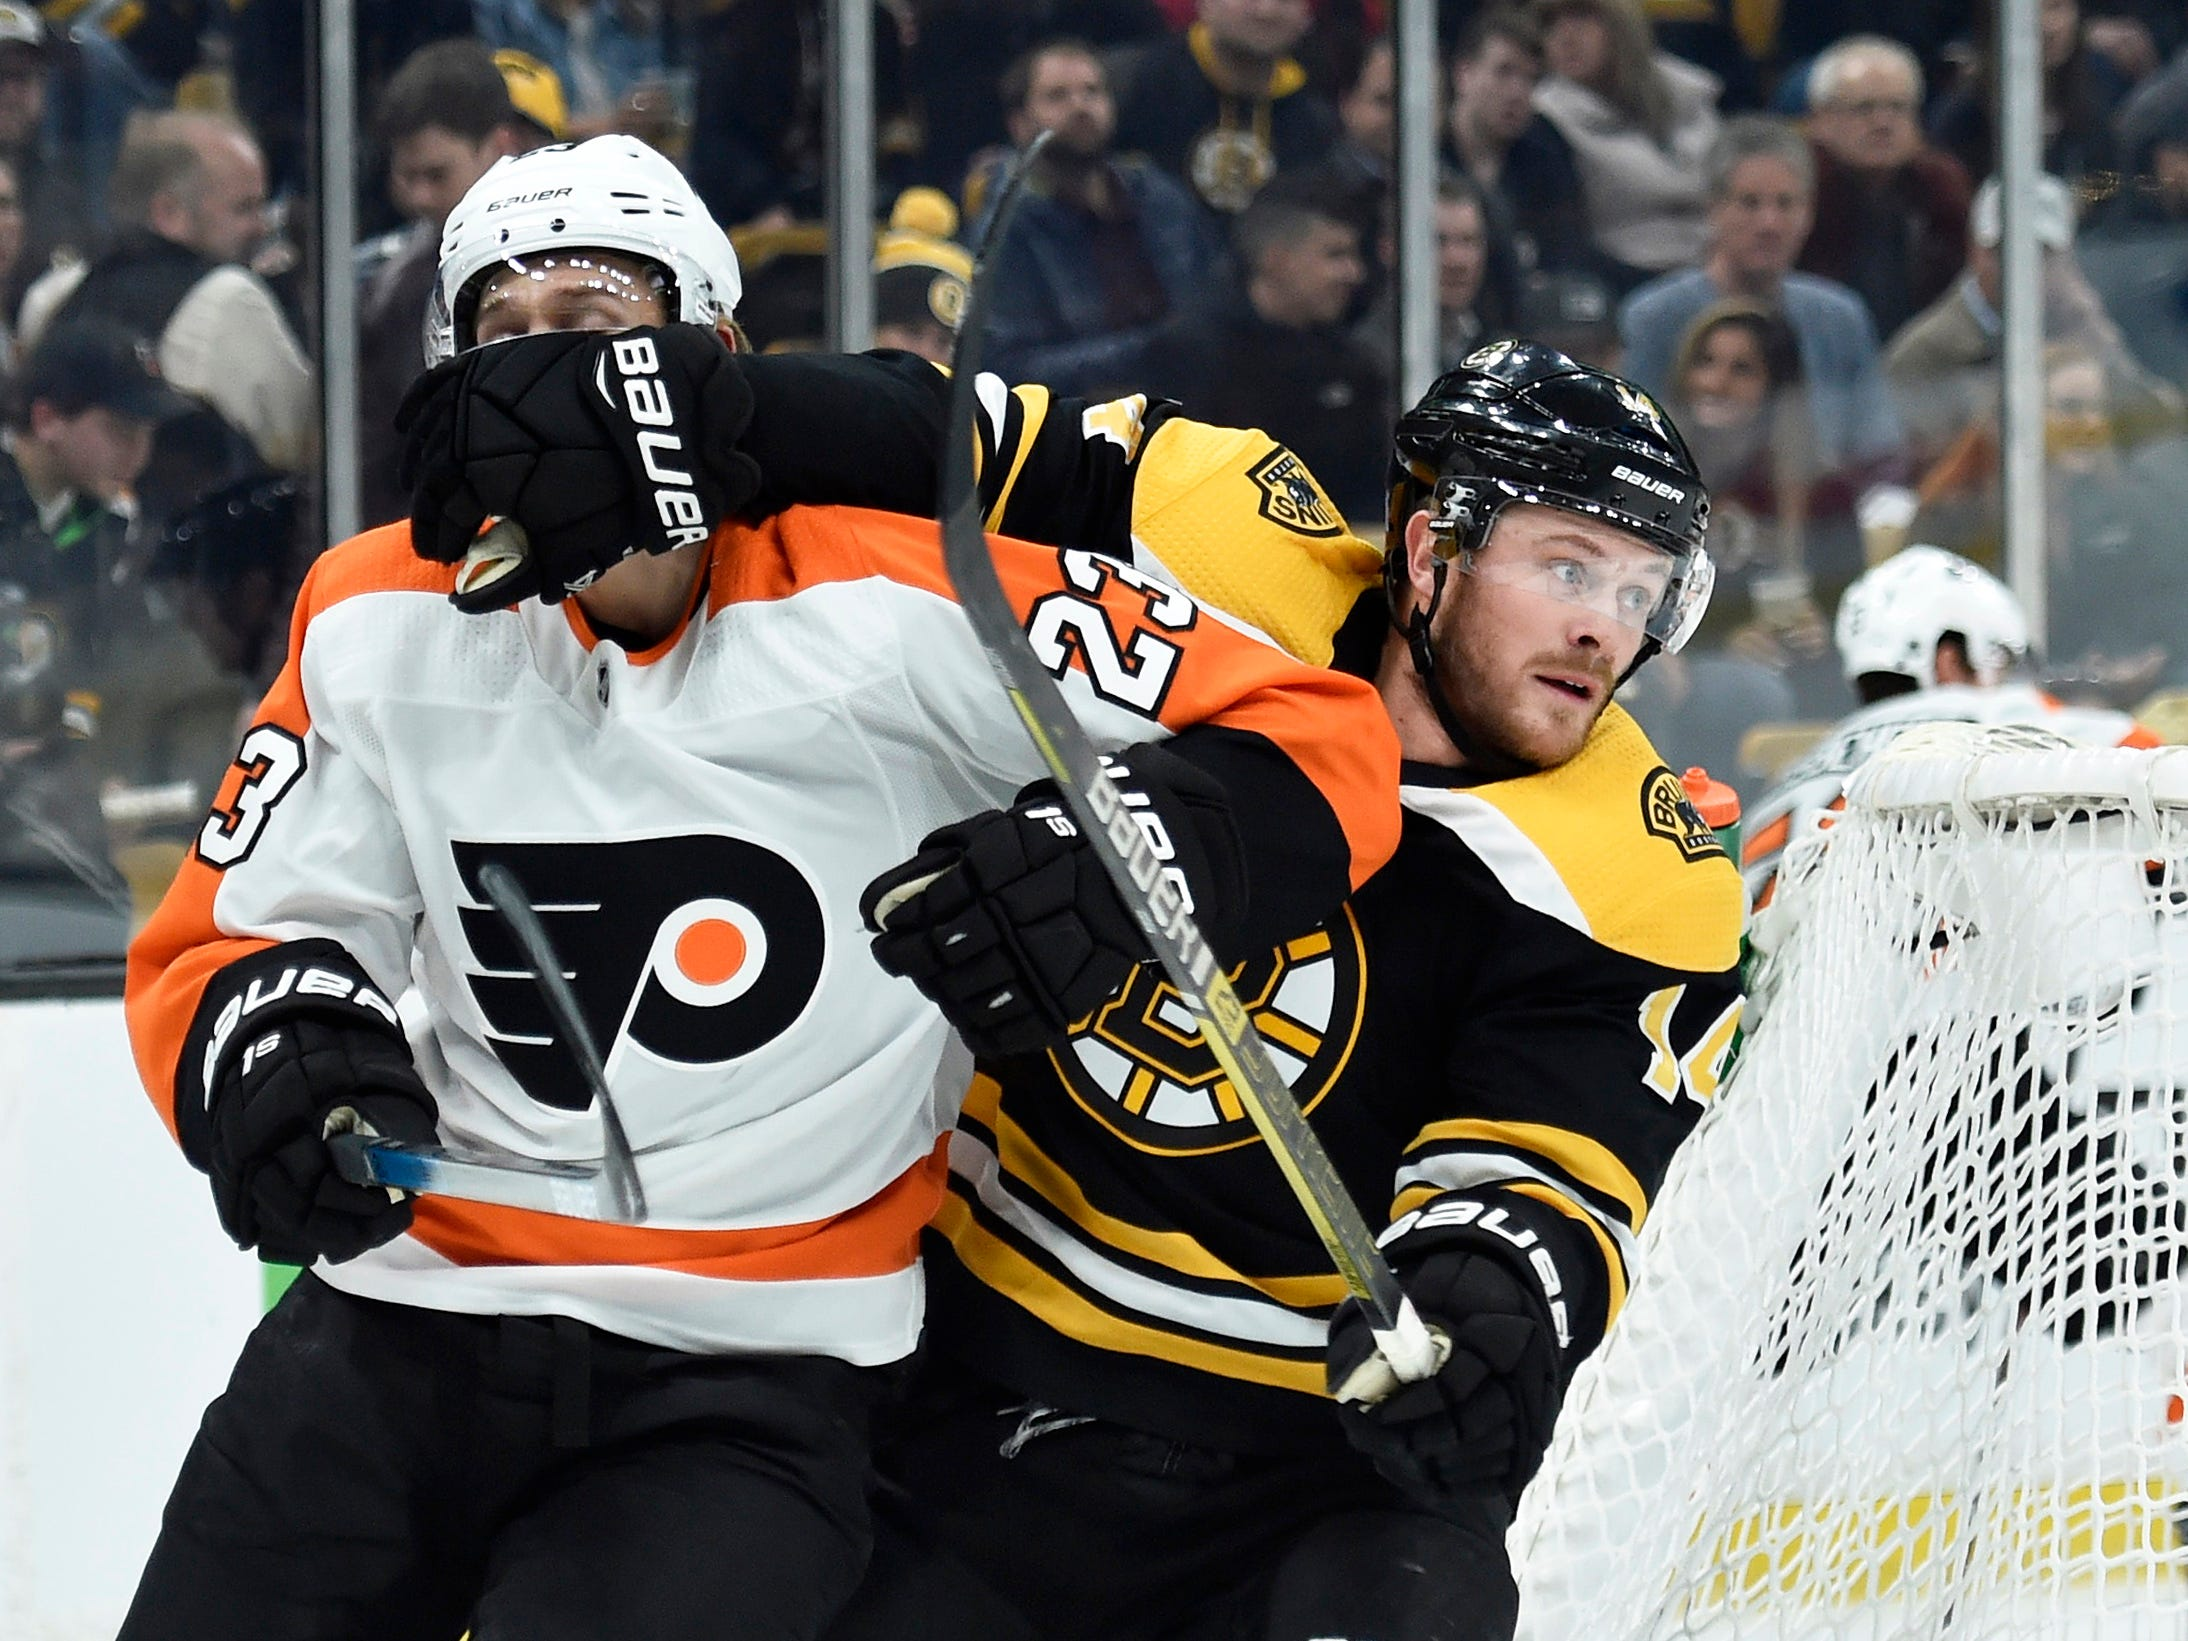 Oct. 25: The Boston Bruins' Chris Wagner and Philadelphia Flyers' Oskar Lindblom battle for position during the first period at TD Garden. The Bruins won the game, 3-0.